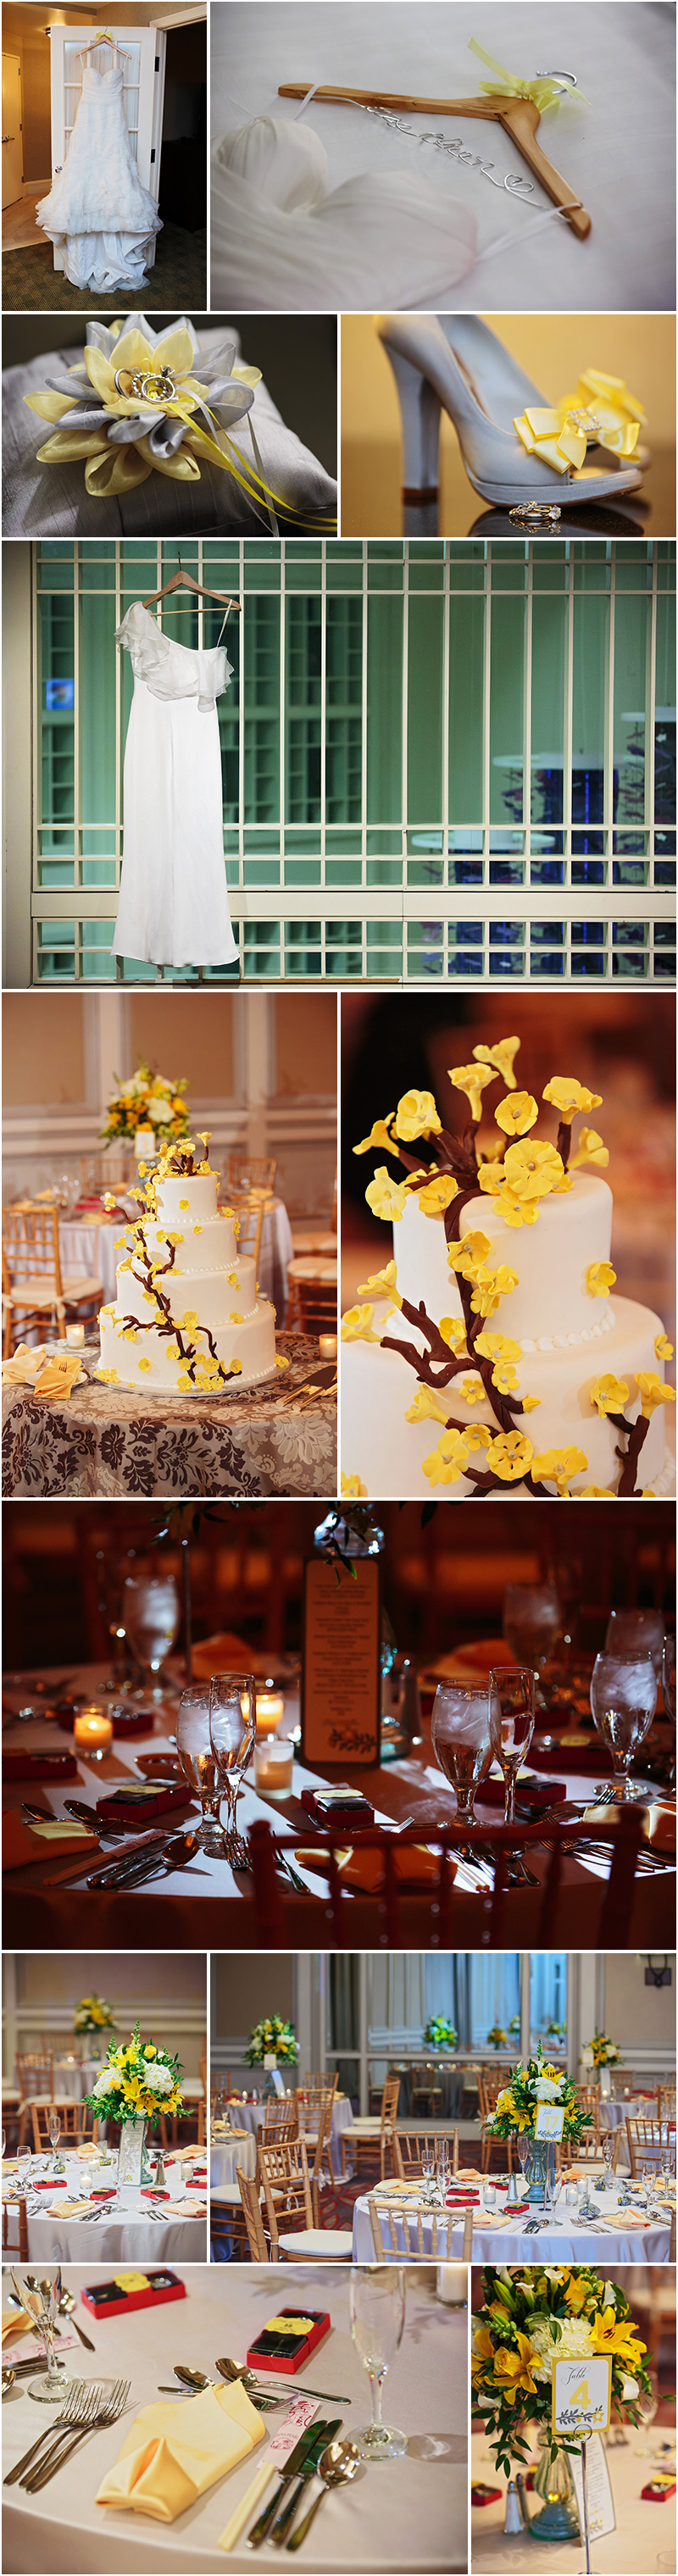 WEDDING PHOTOS HYATT REGENCY BOSTON